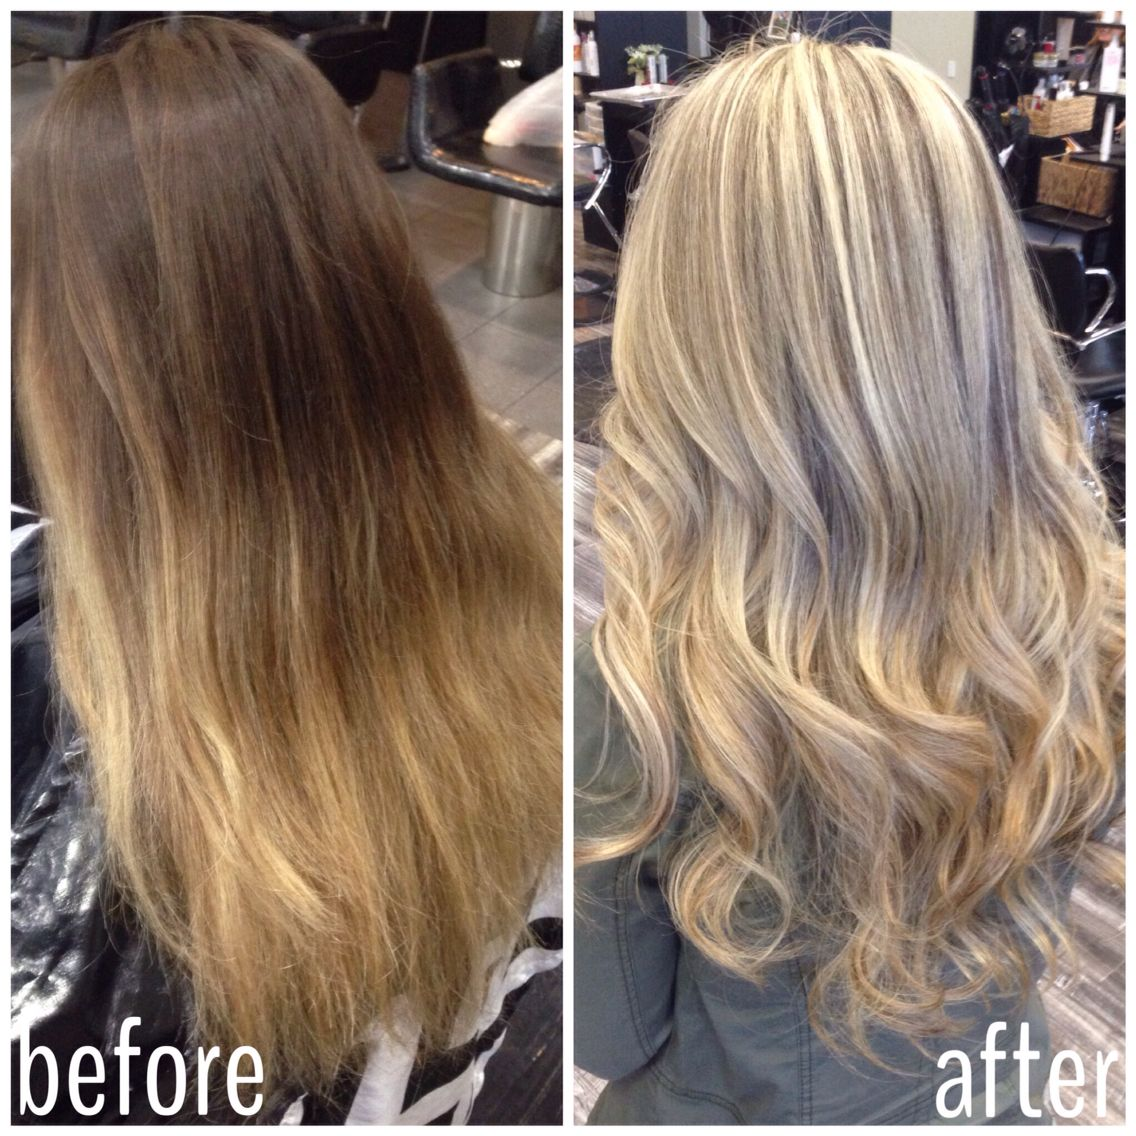 Before And After Going From Ombre Back To Blonde Blonde